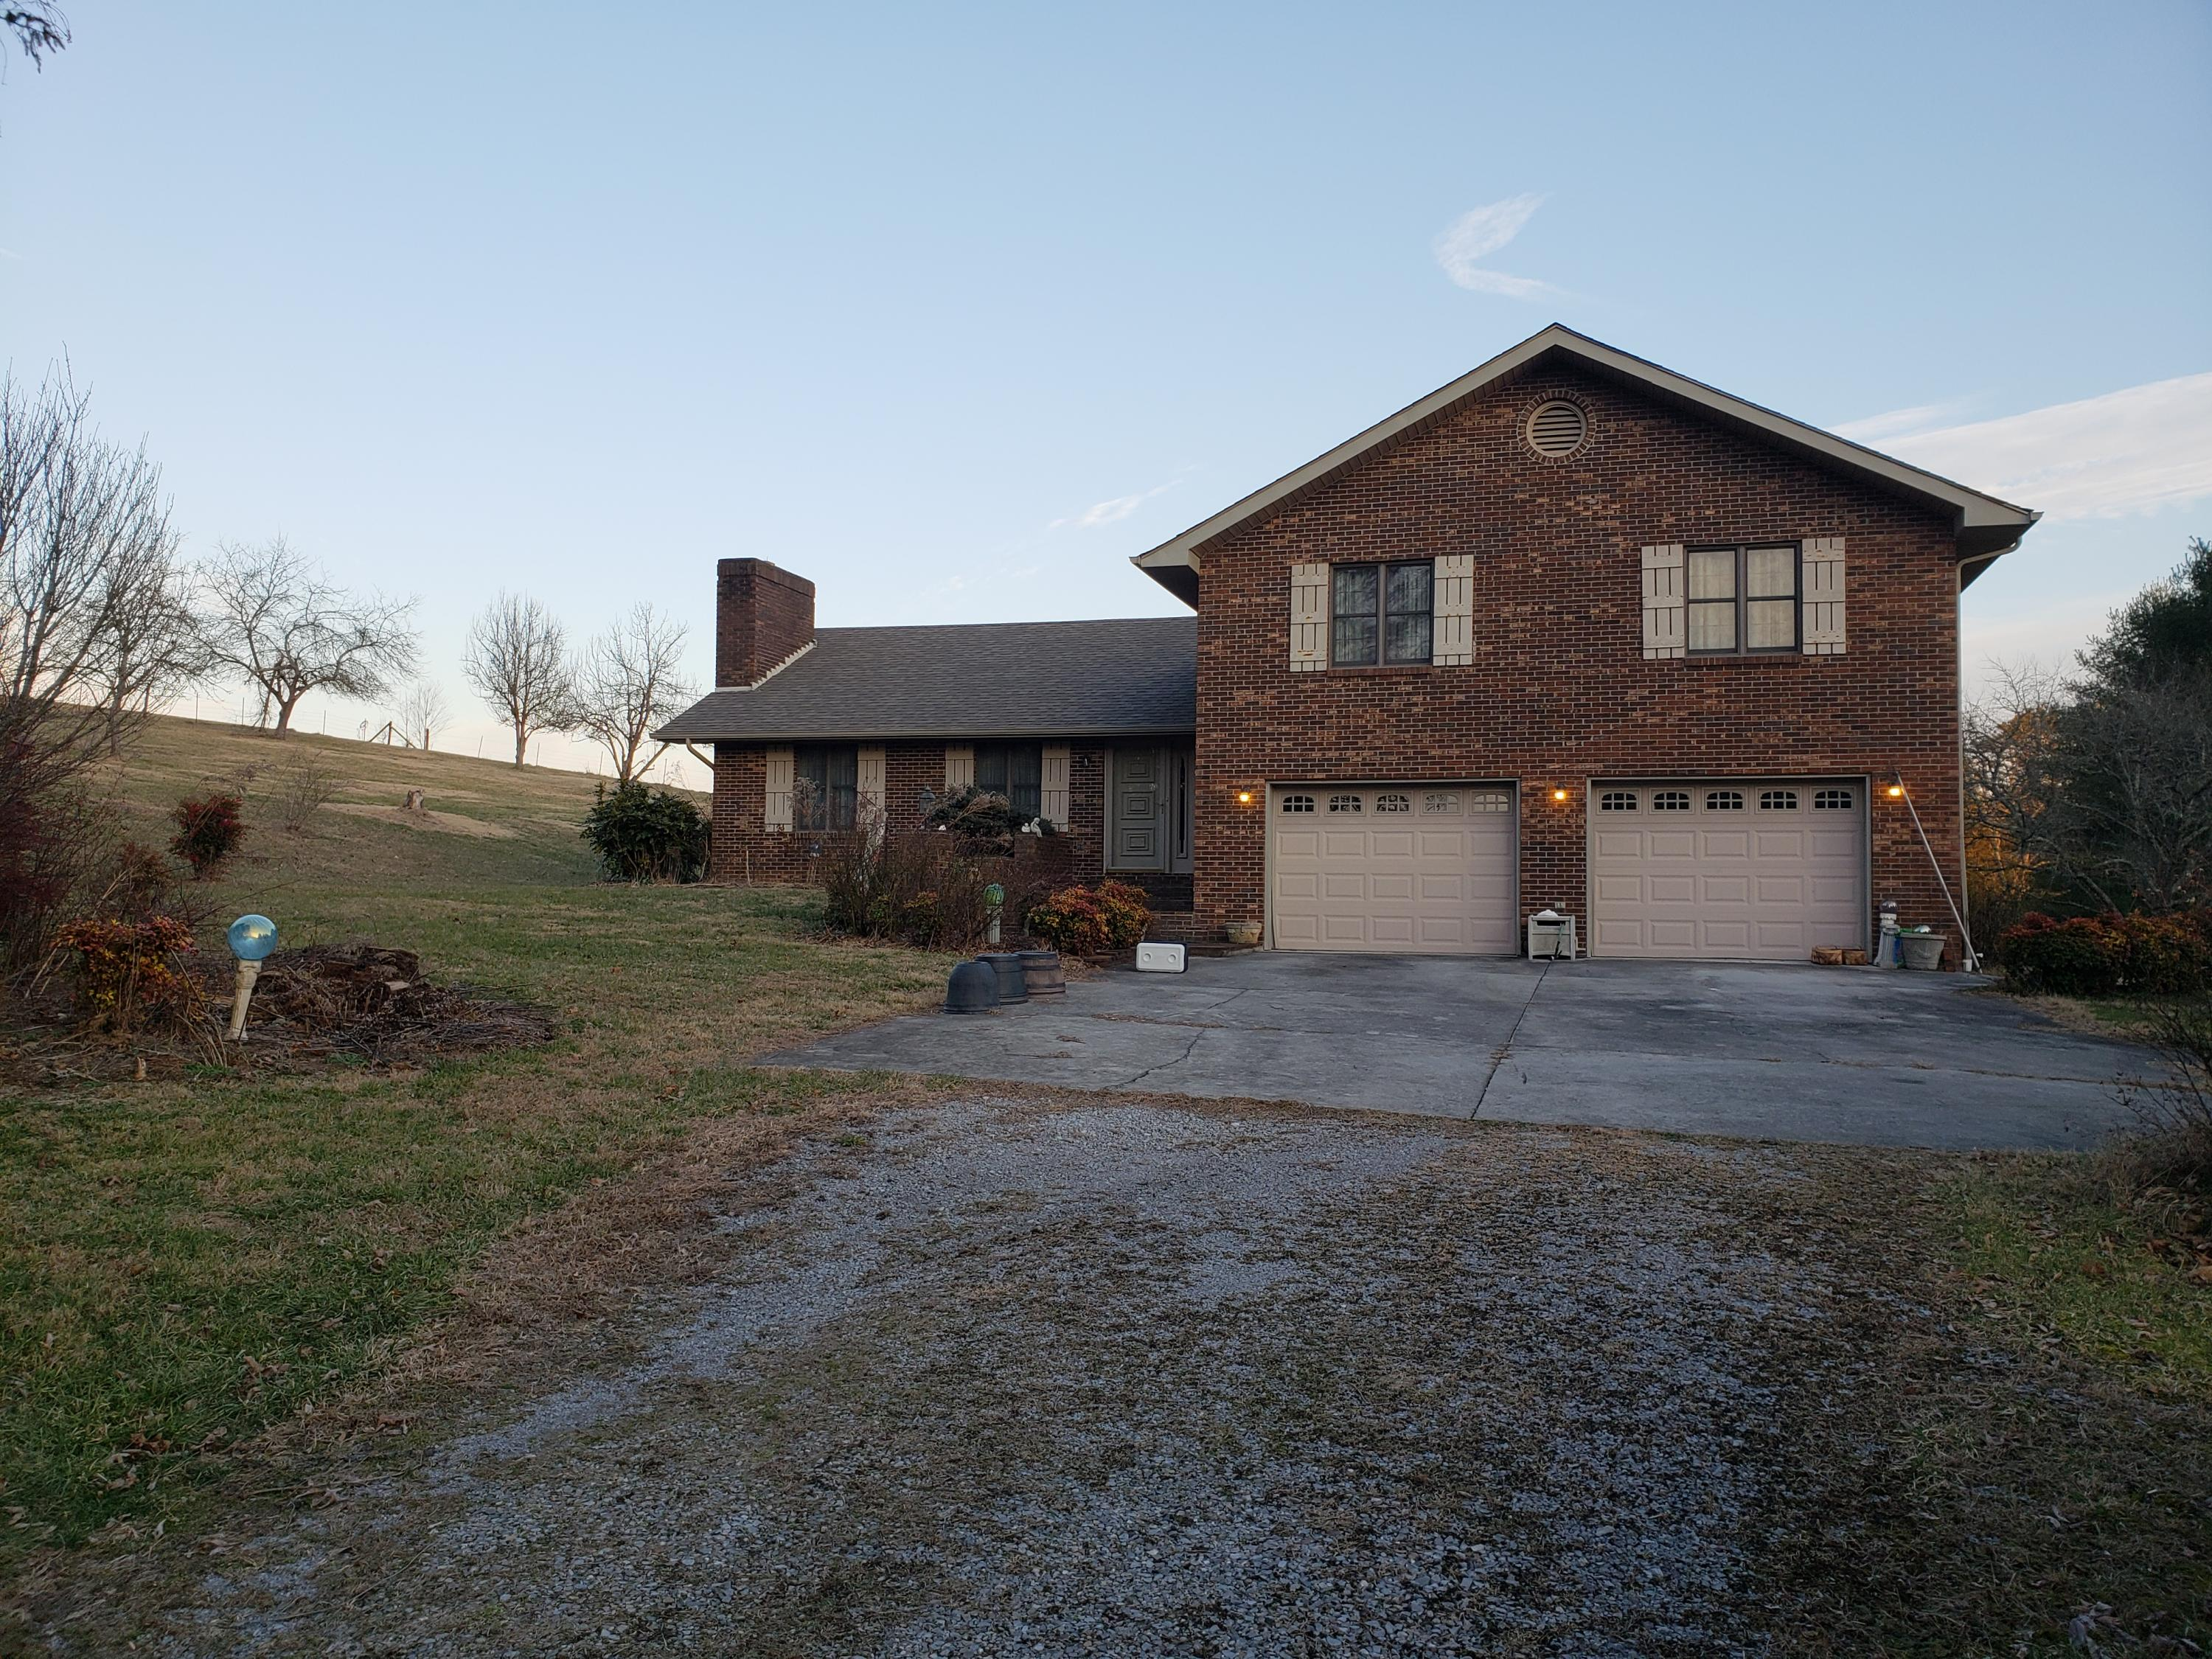 185 Libby, Harrogate, Tennessee, United States 37752, 4 Bedrooms Bedrooms, ,2 BathroomsBathrooms,Single Family,For Sale,Libby,1068578